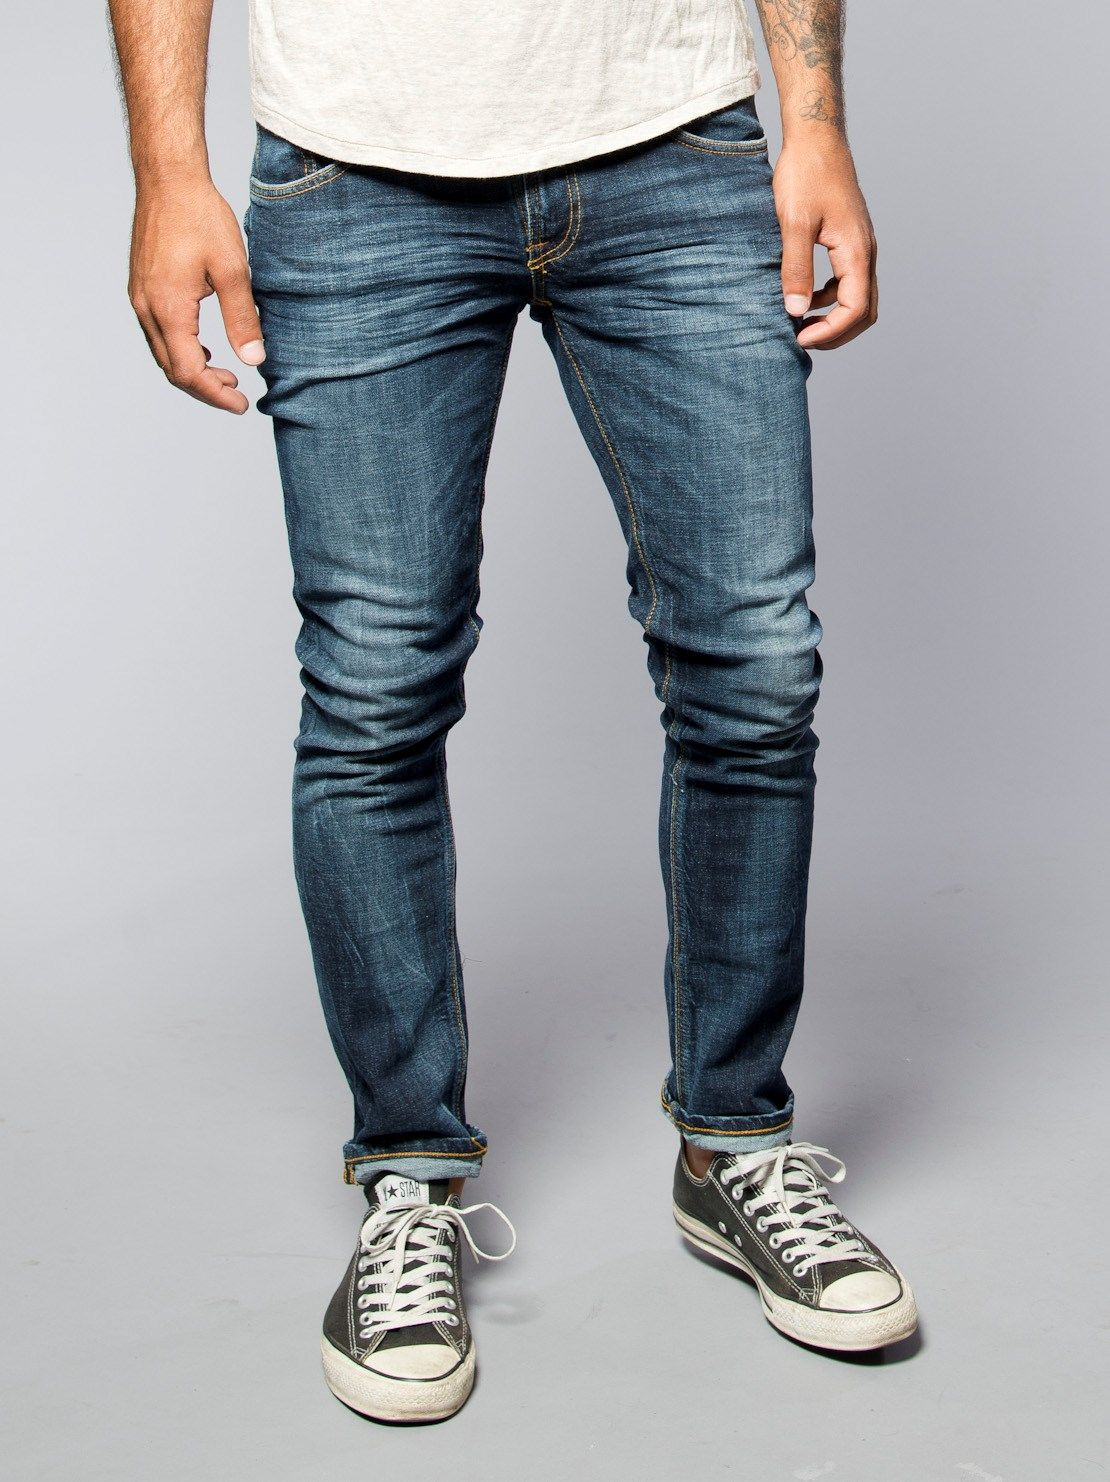 Nudie Jeans® | 100% Organic Denim Collection | Official Site - Nudie Jeans